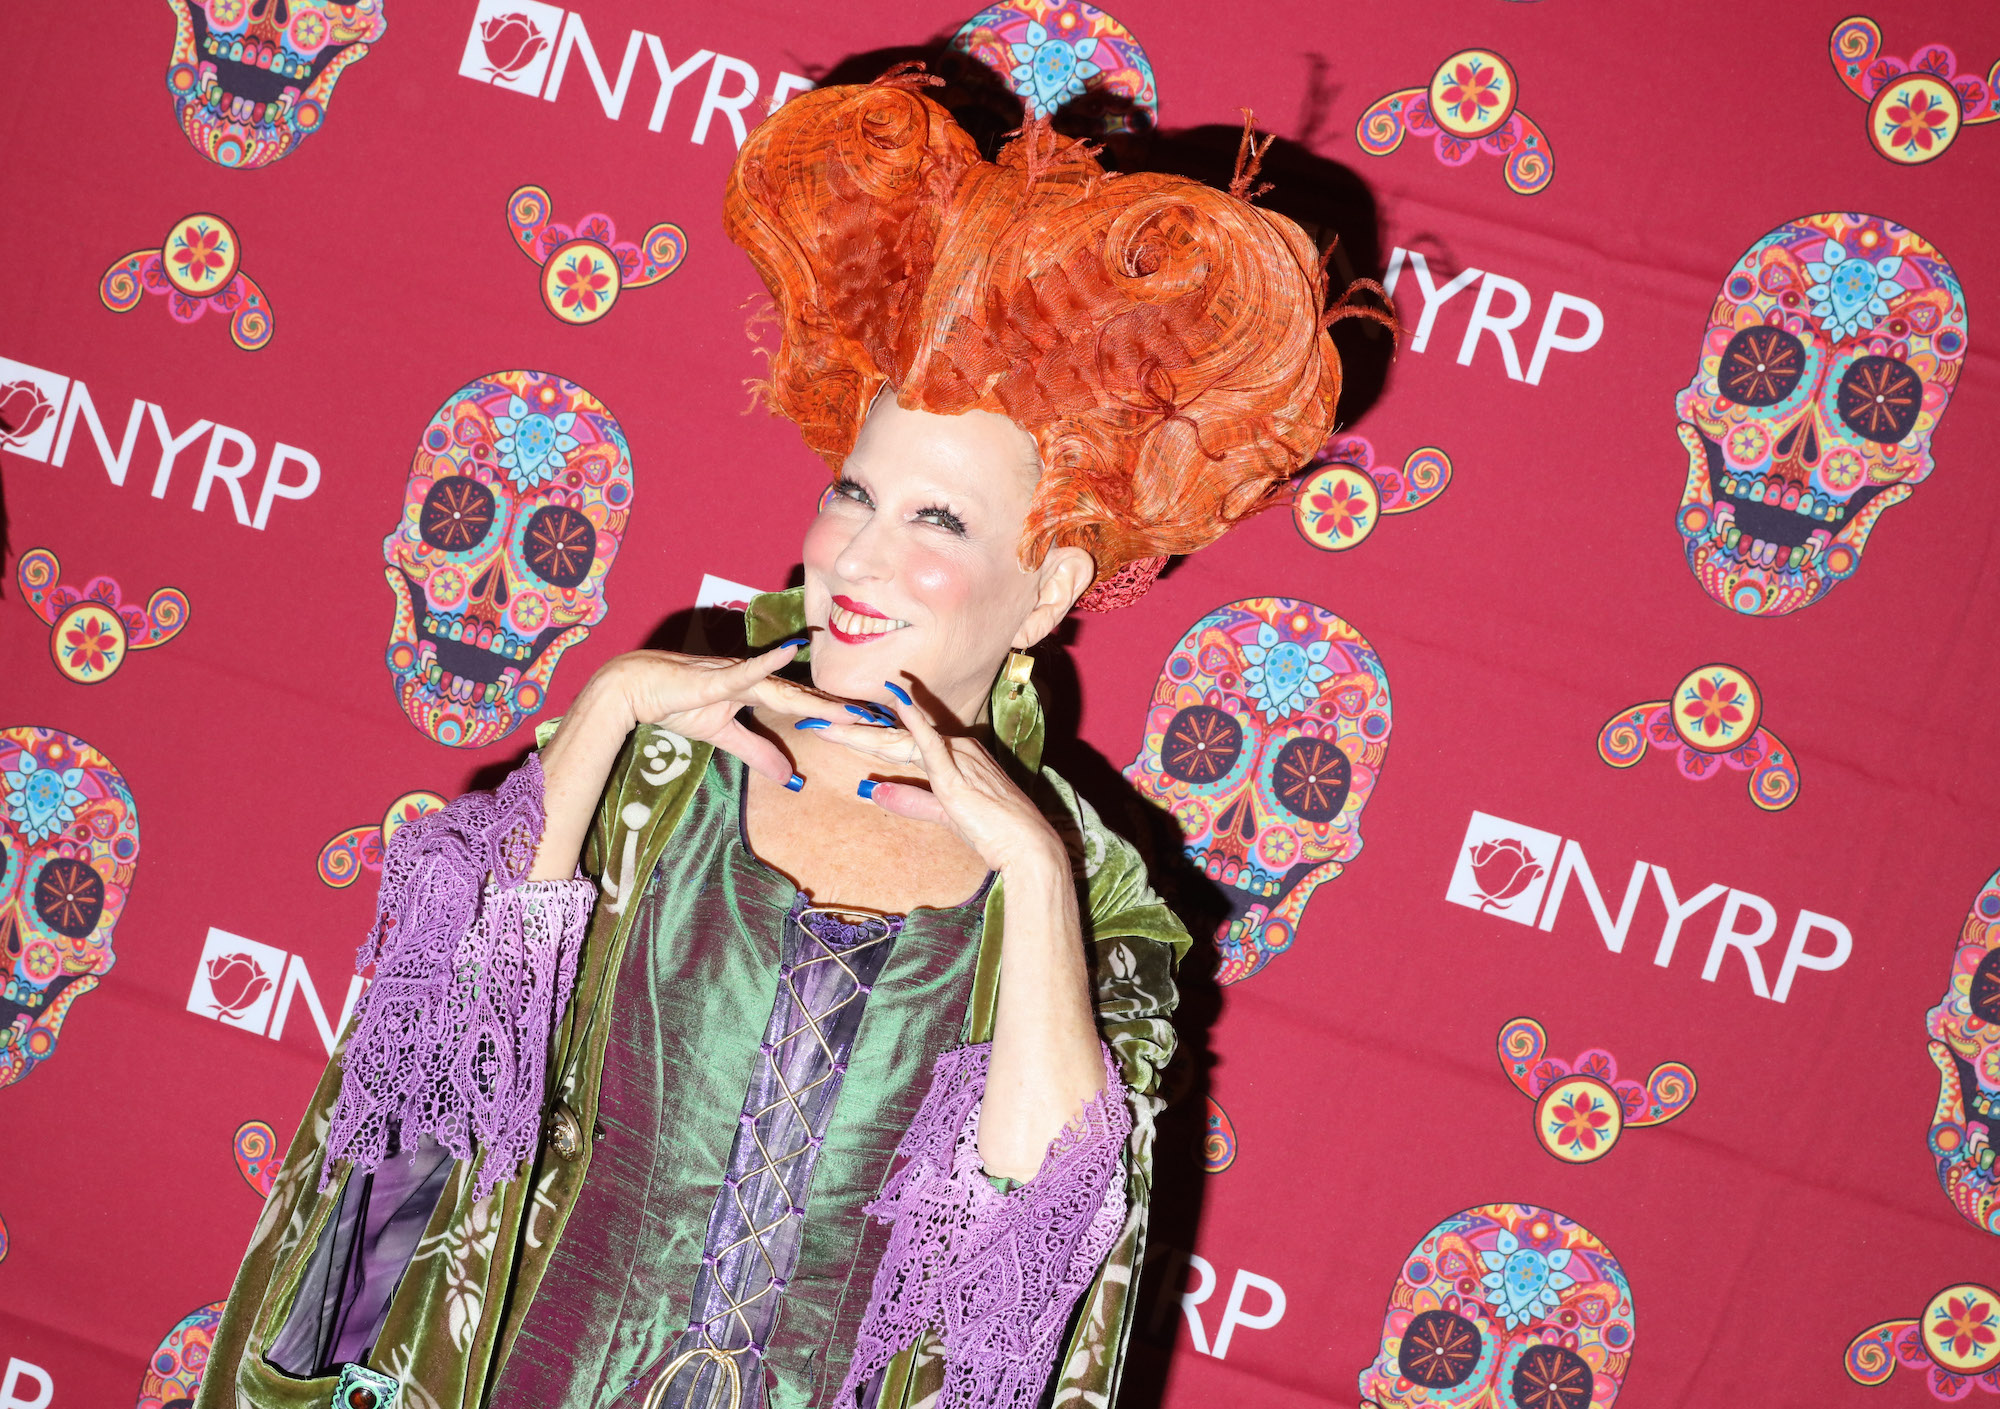 Bette Midler dressed as Winifred Sanderson from 'Hocus Pocus' on the red carpet at Bette Midler's annual Hulaween Bash on October 28, 2016.